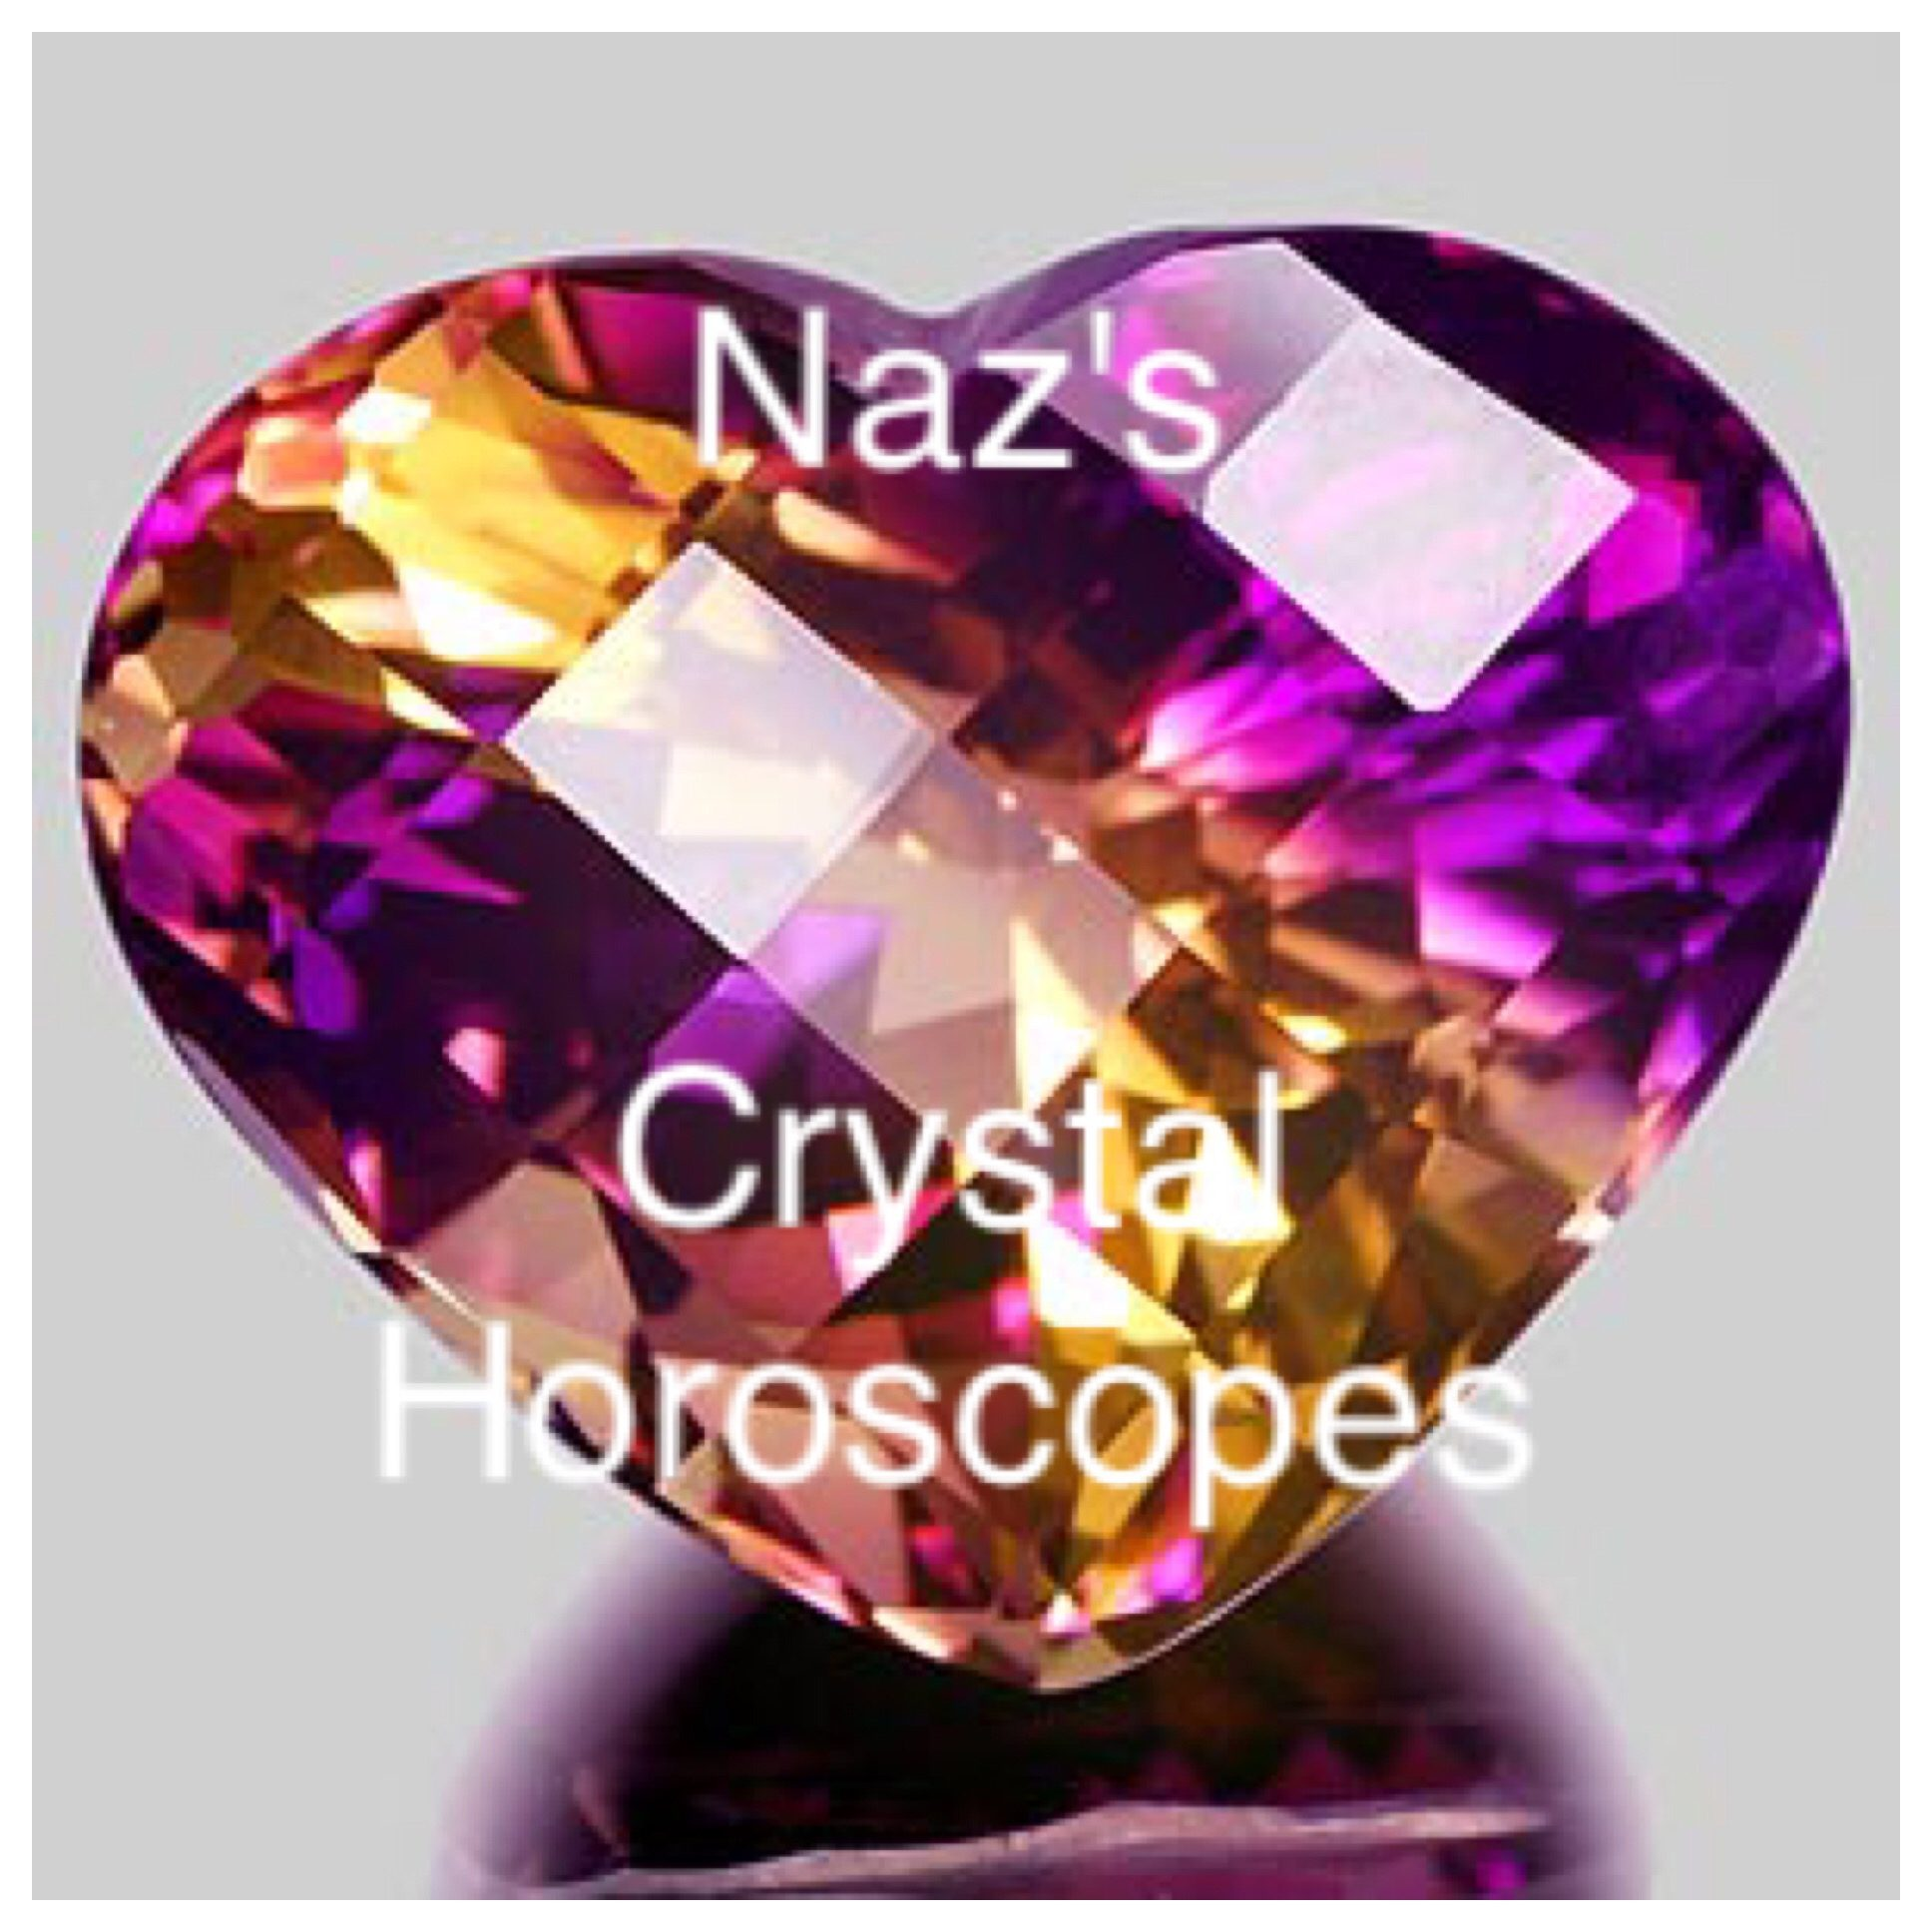 Naz's Crystal Horoscopes  30th July - 5th August 2017